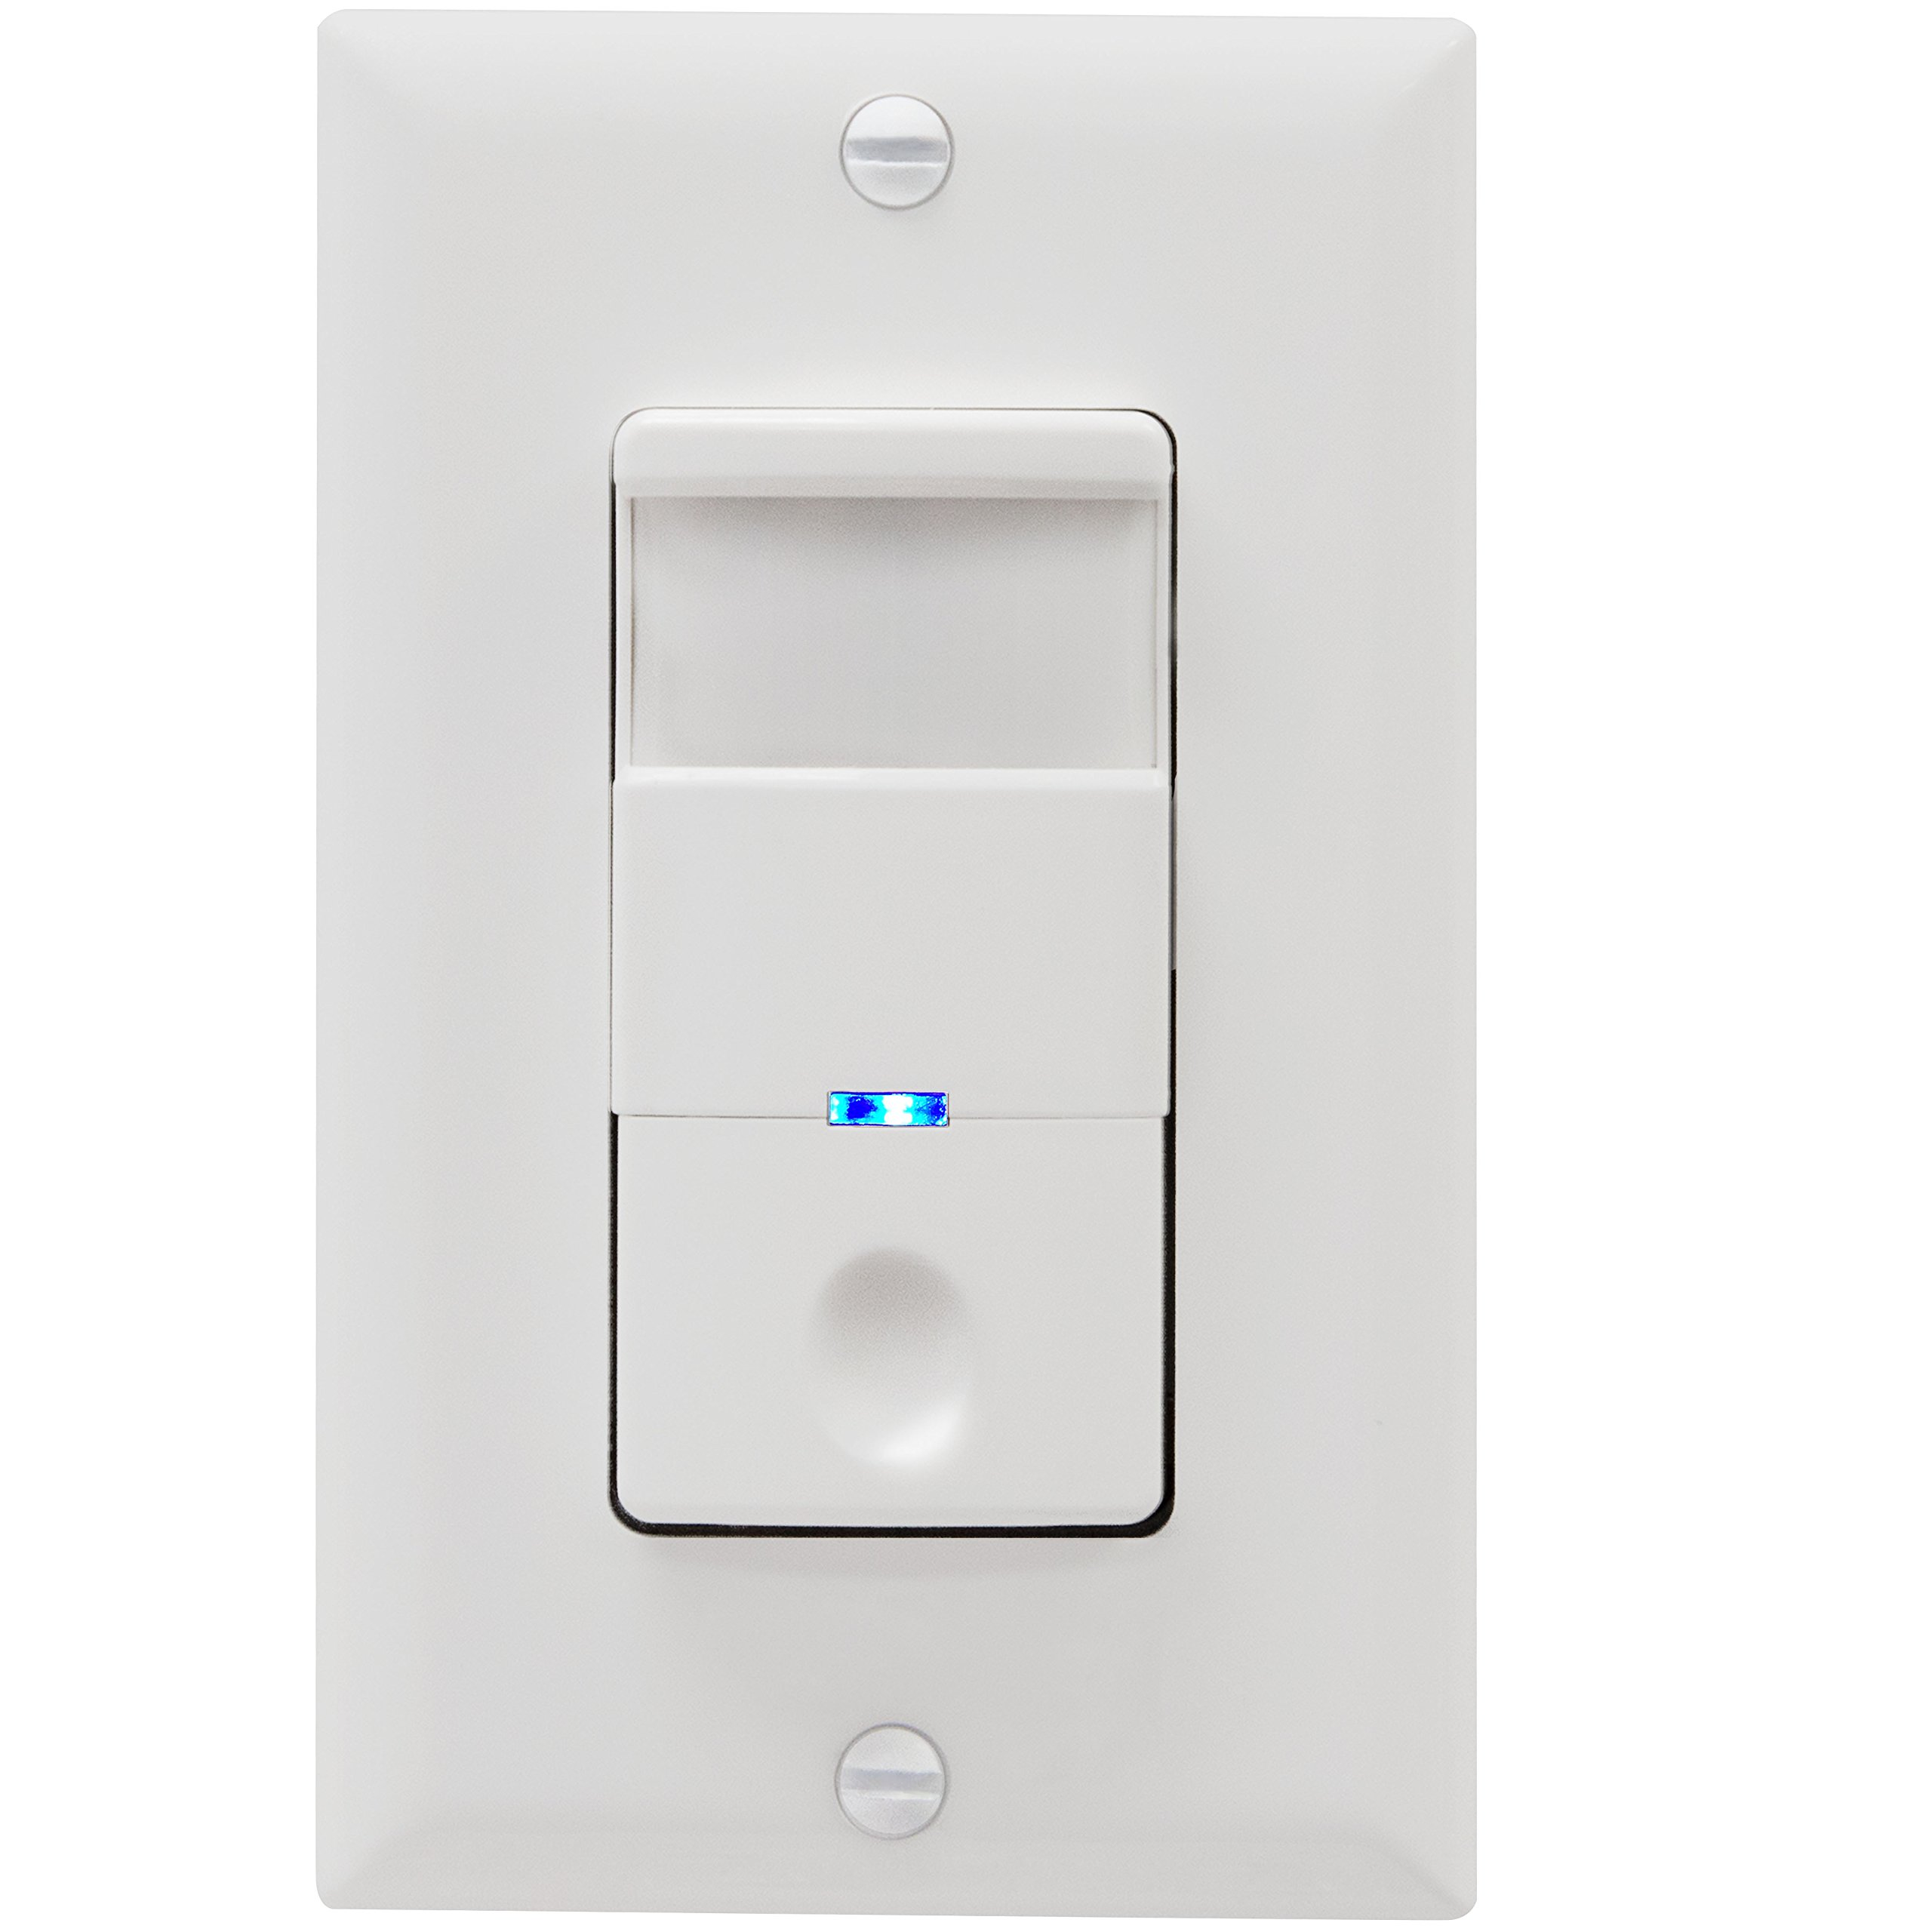 TOPGREENER Motion Sensor Switch, 4A, No Neutral Required Models, Heavy Duty, Single-Pole, TDOS5-J-W, White